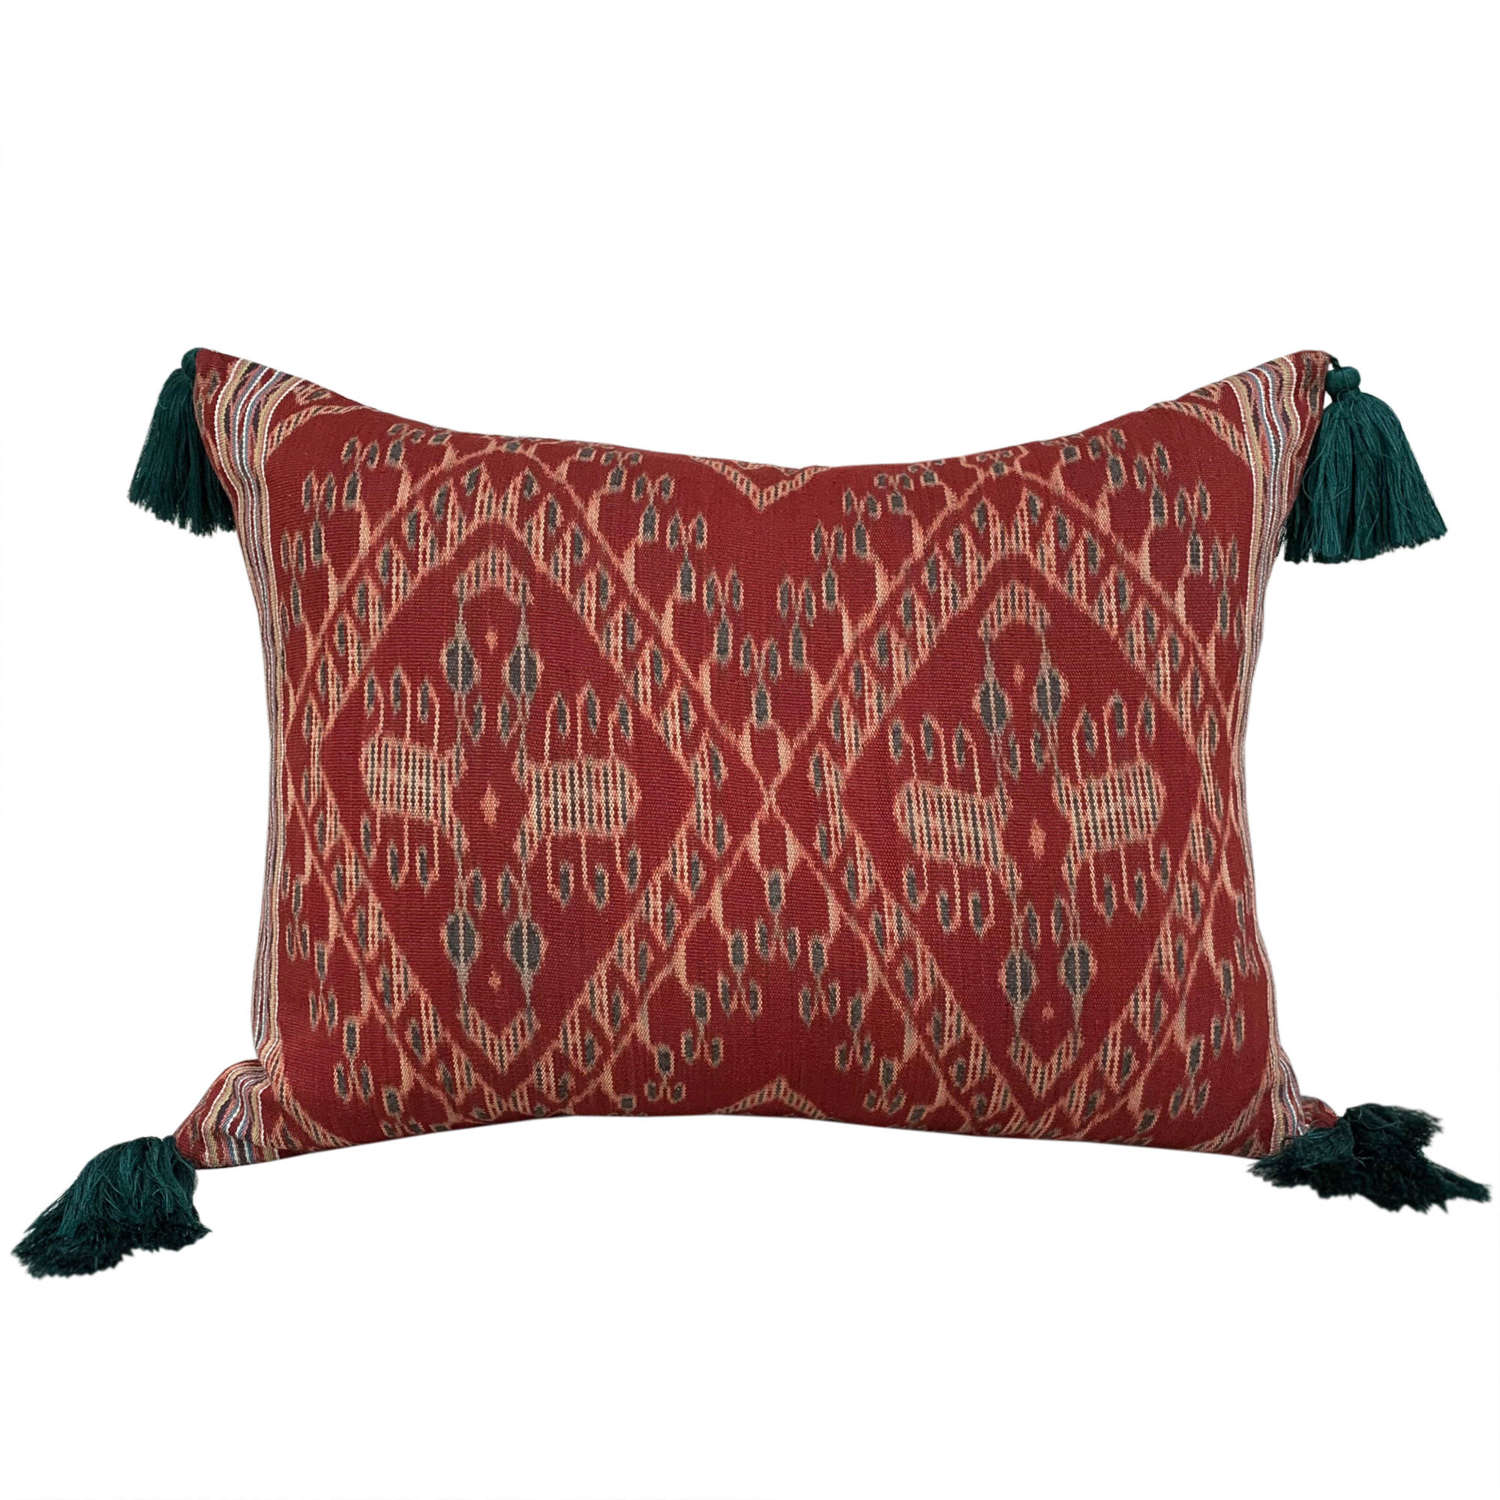 Timor ikat with tassels